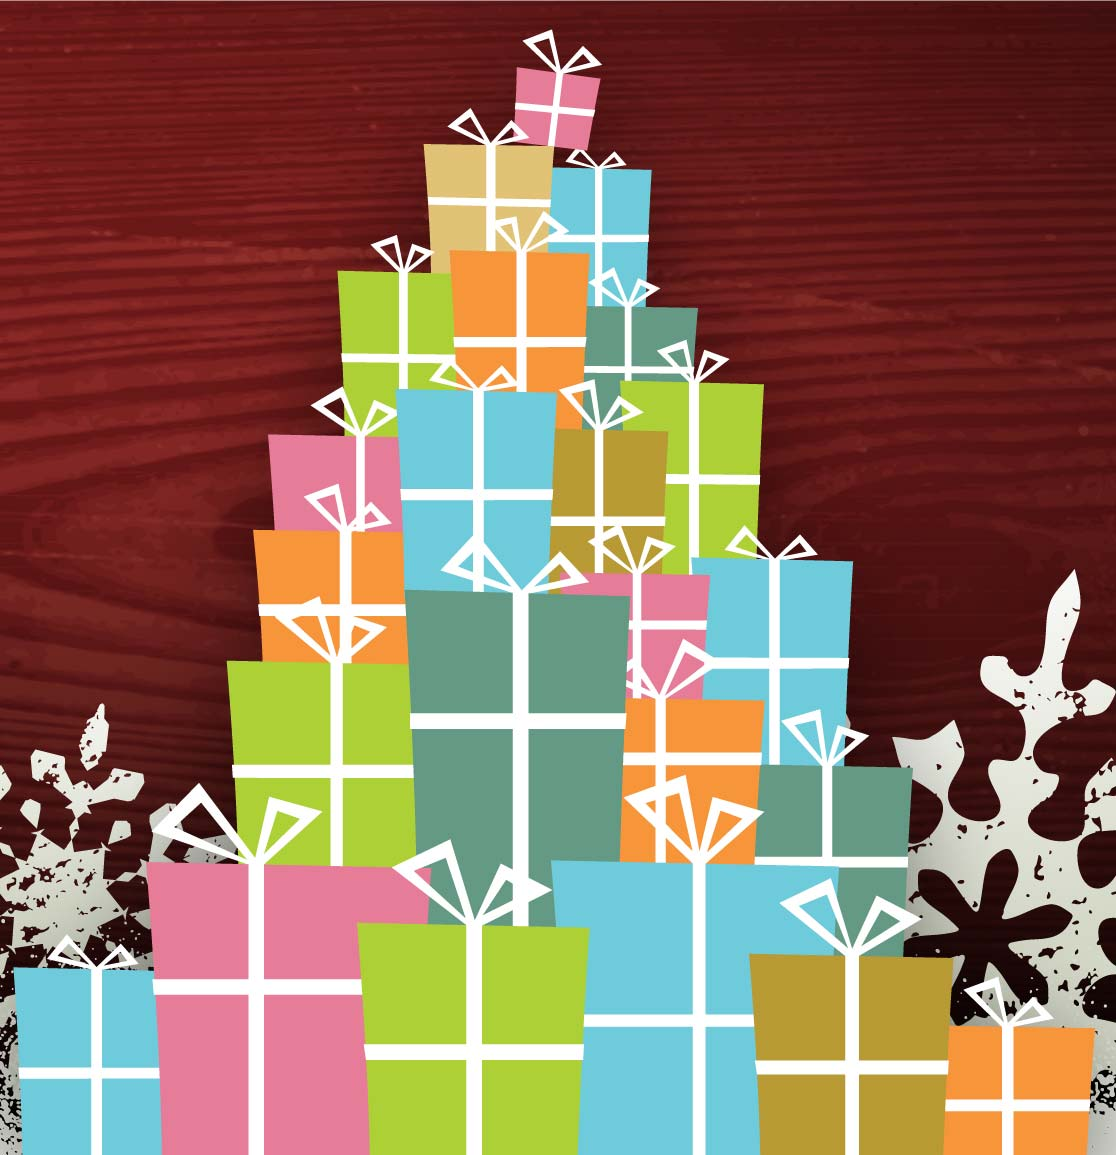 Illustration of a stack of presents